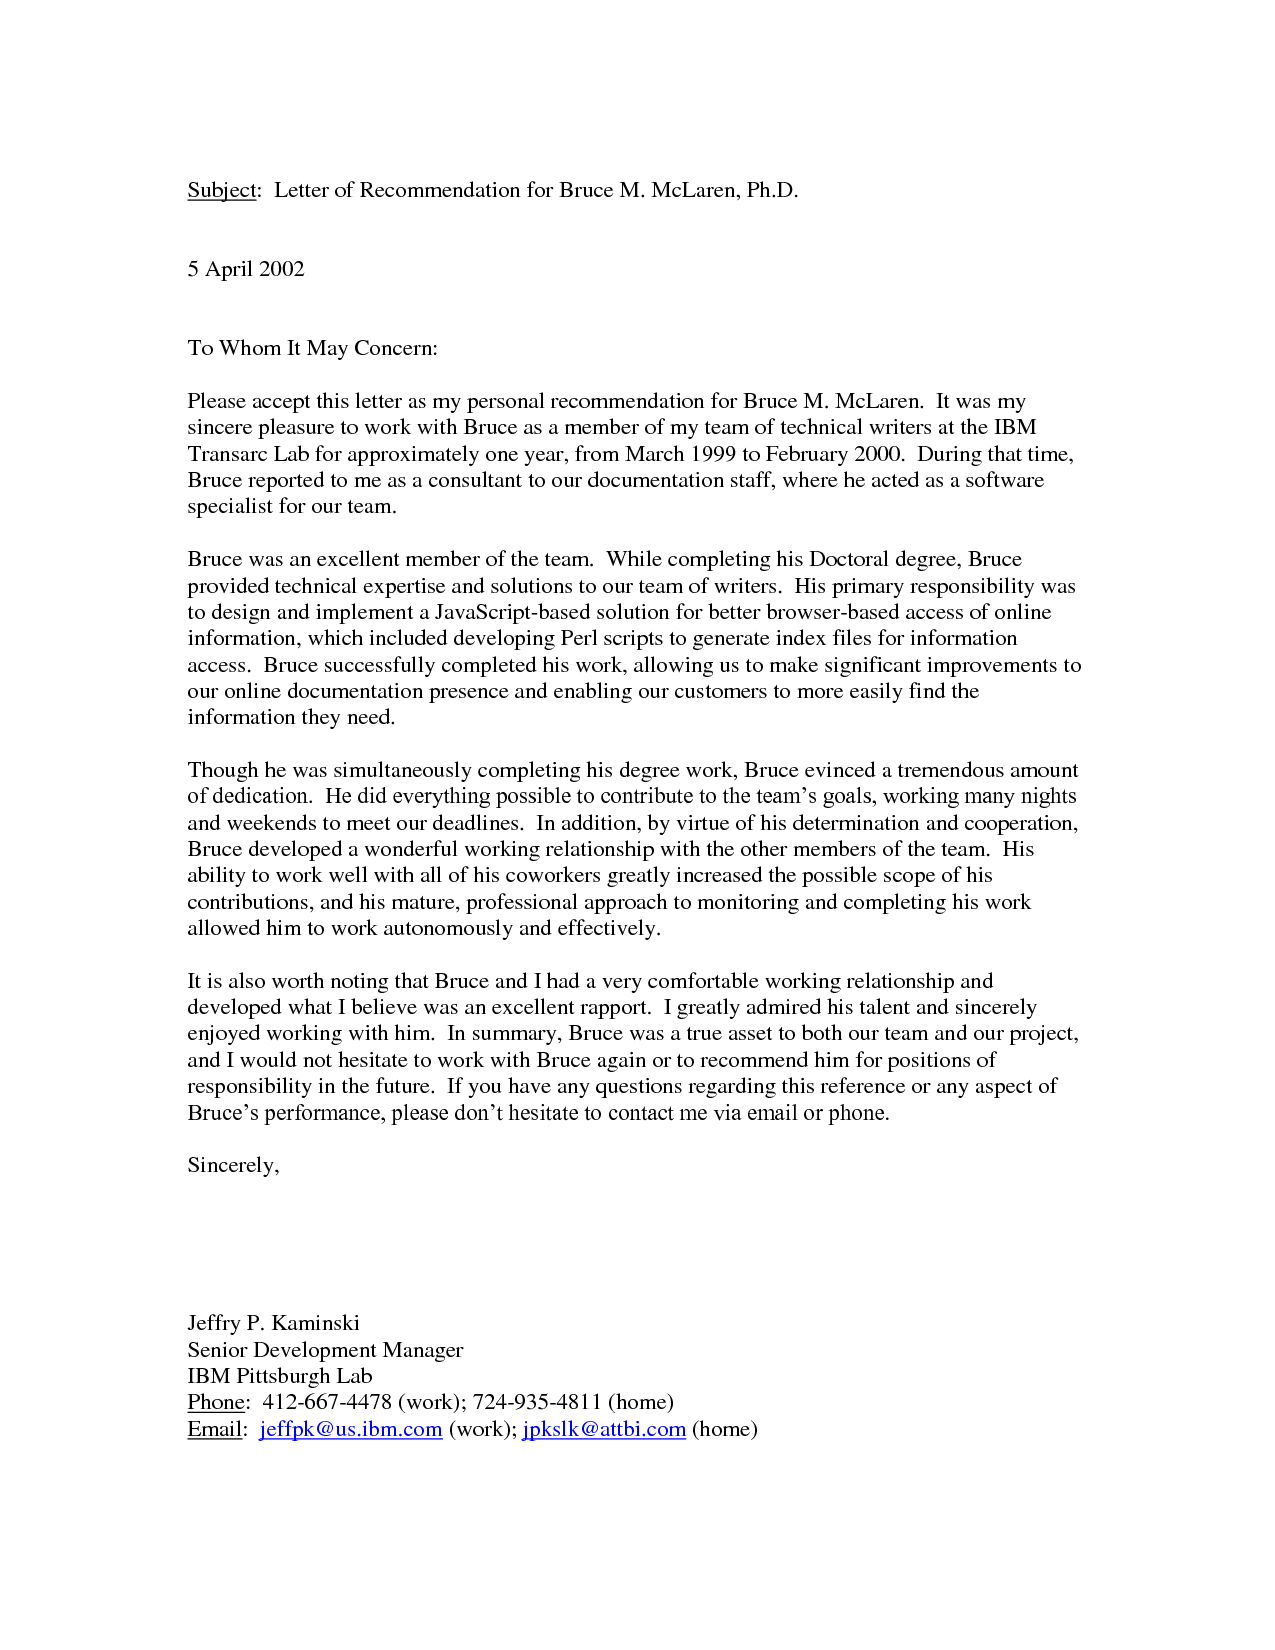 Personal Reference Letter Of RecommendationLetter Of Recommendation Formal Letter  Sample Regarding How To Write A Personal Reference Letter